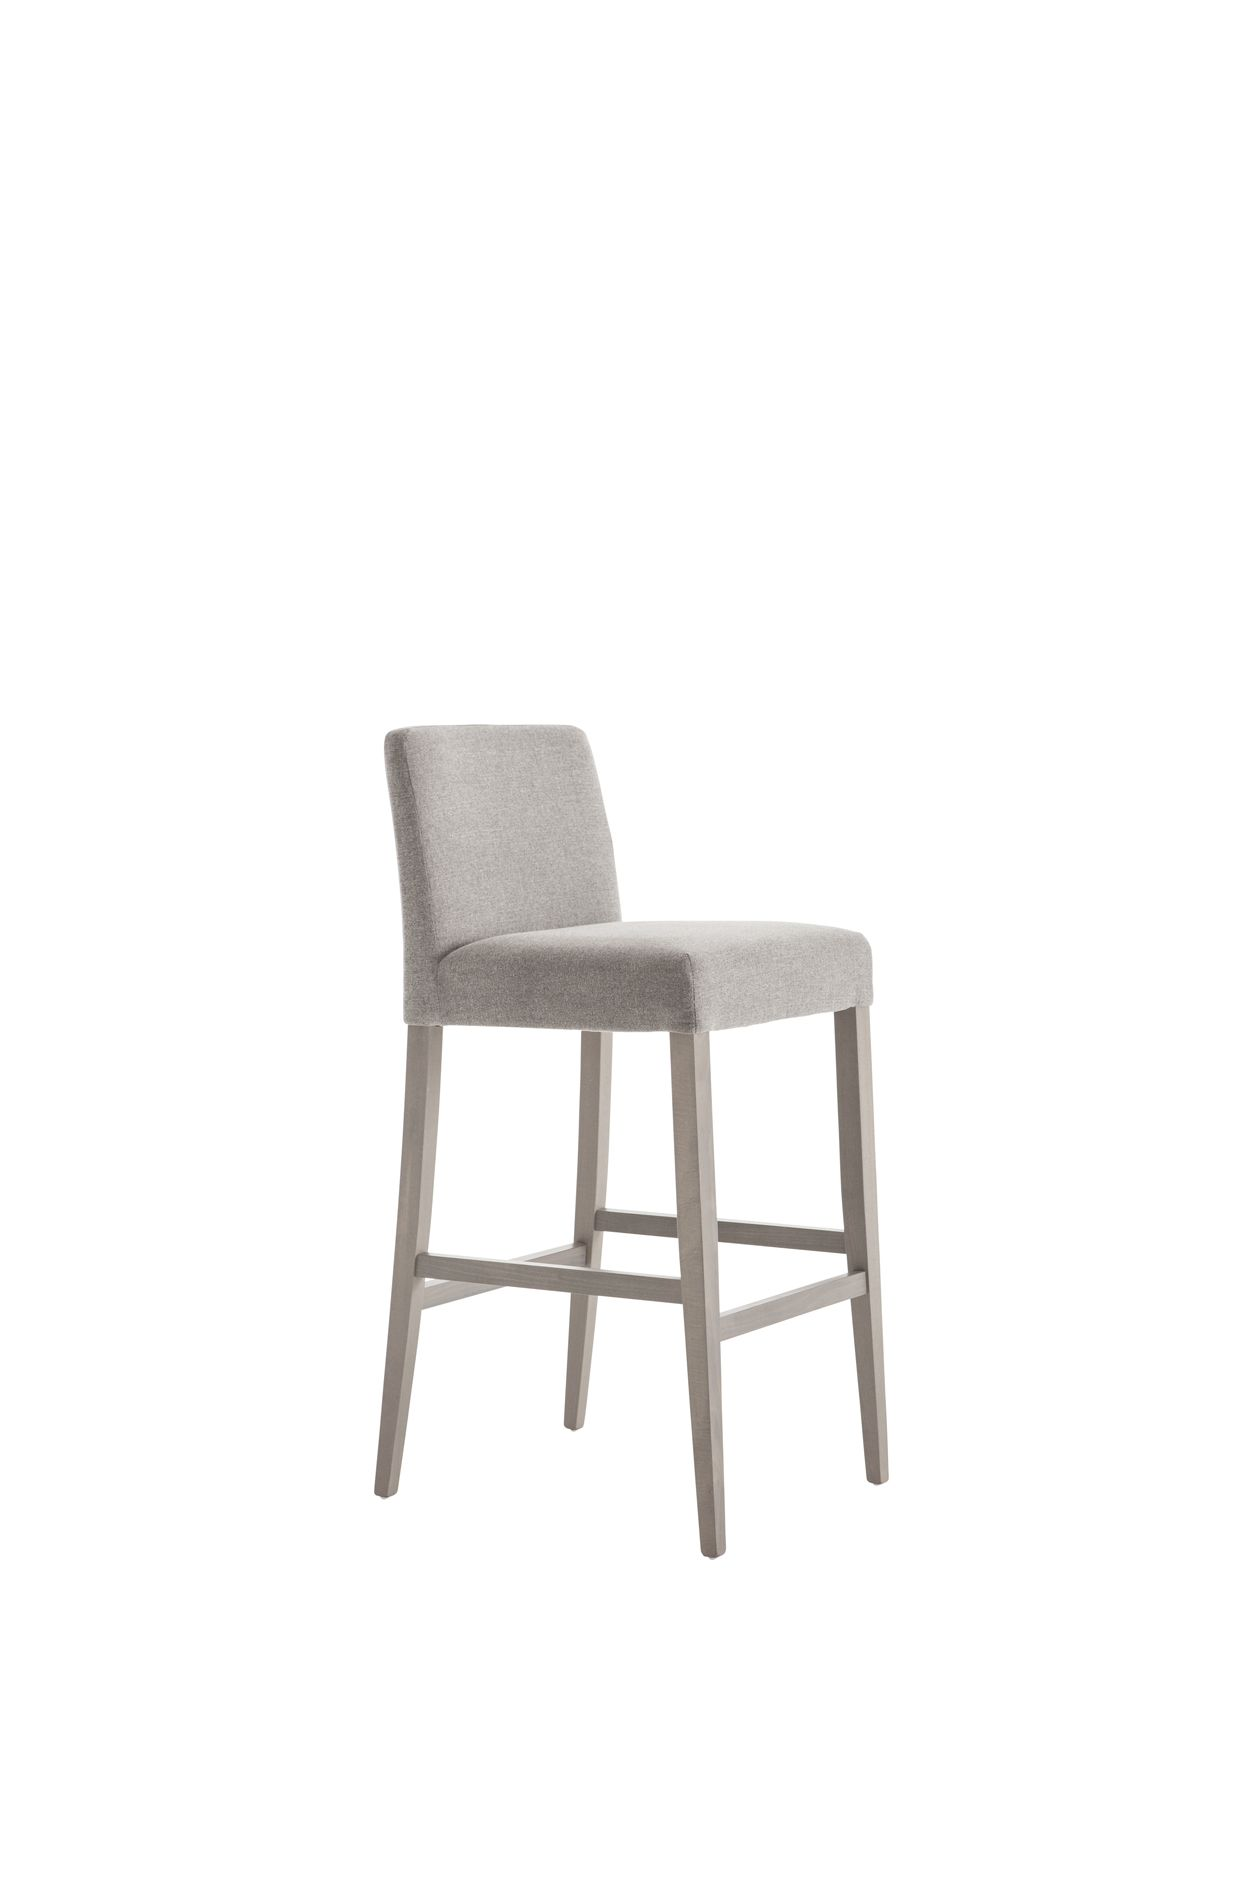 Miss 49si Upholstered Bar Stool Stax Chairs